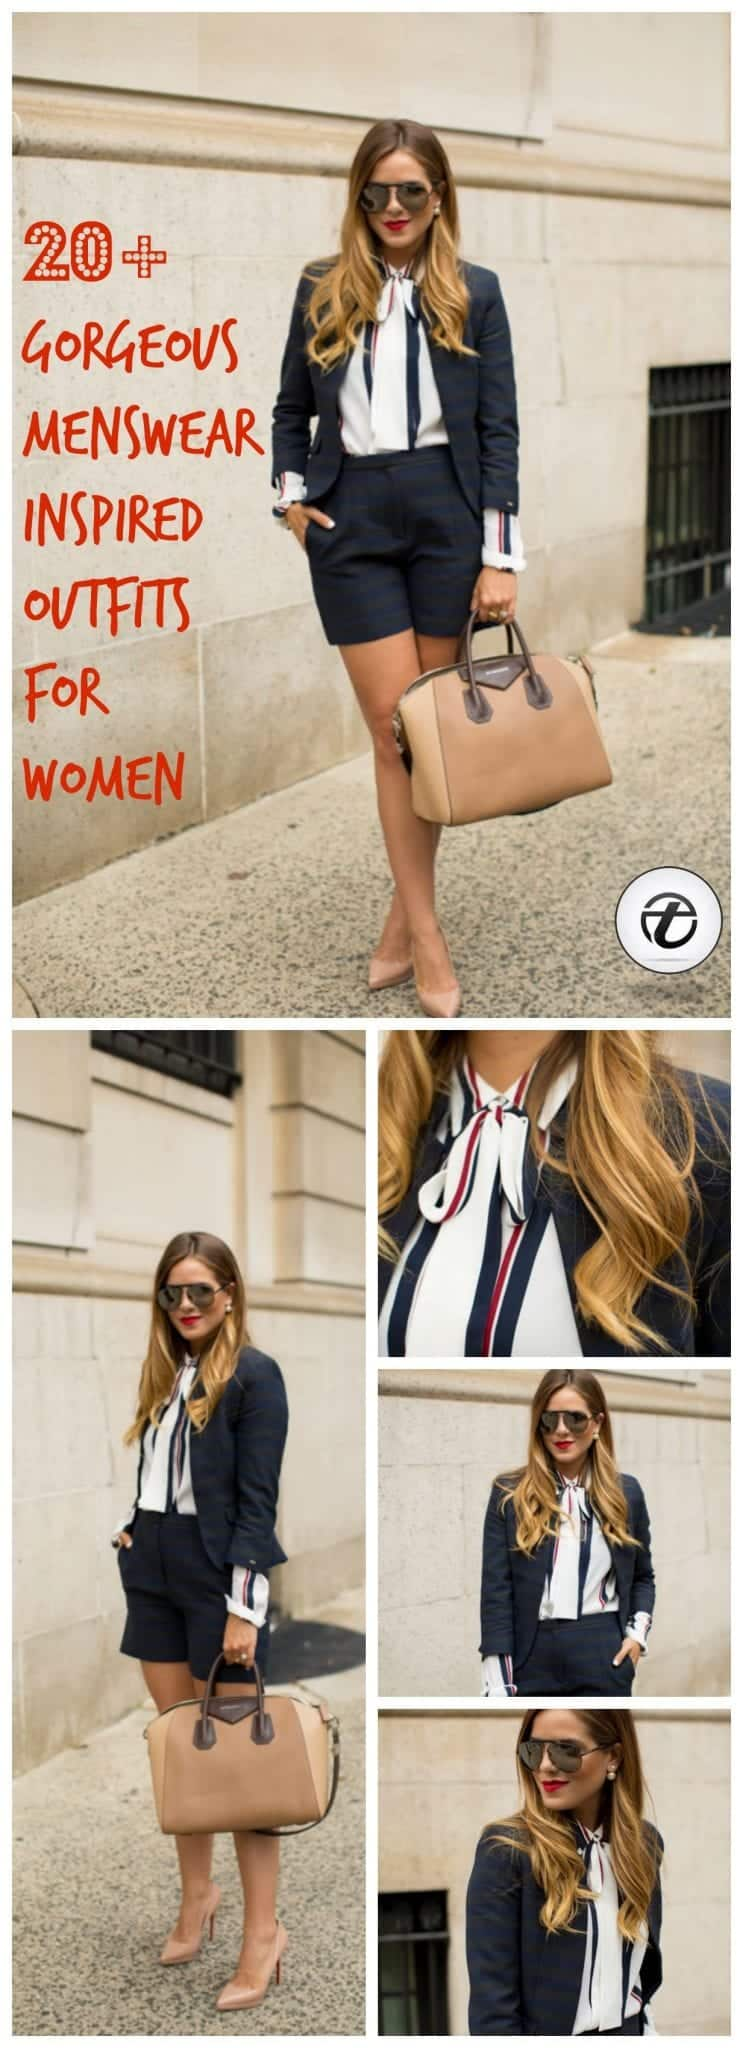 menswear inspired clothing for women